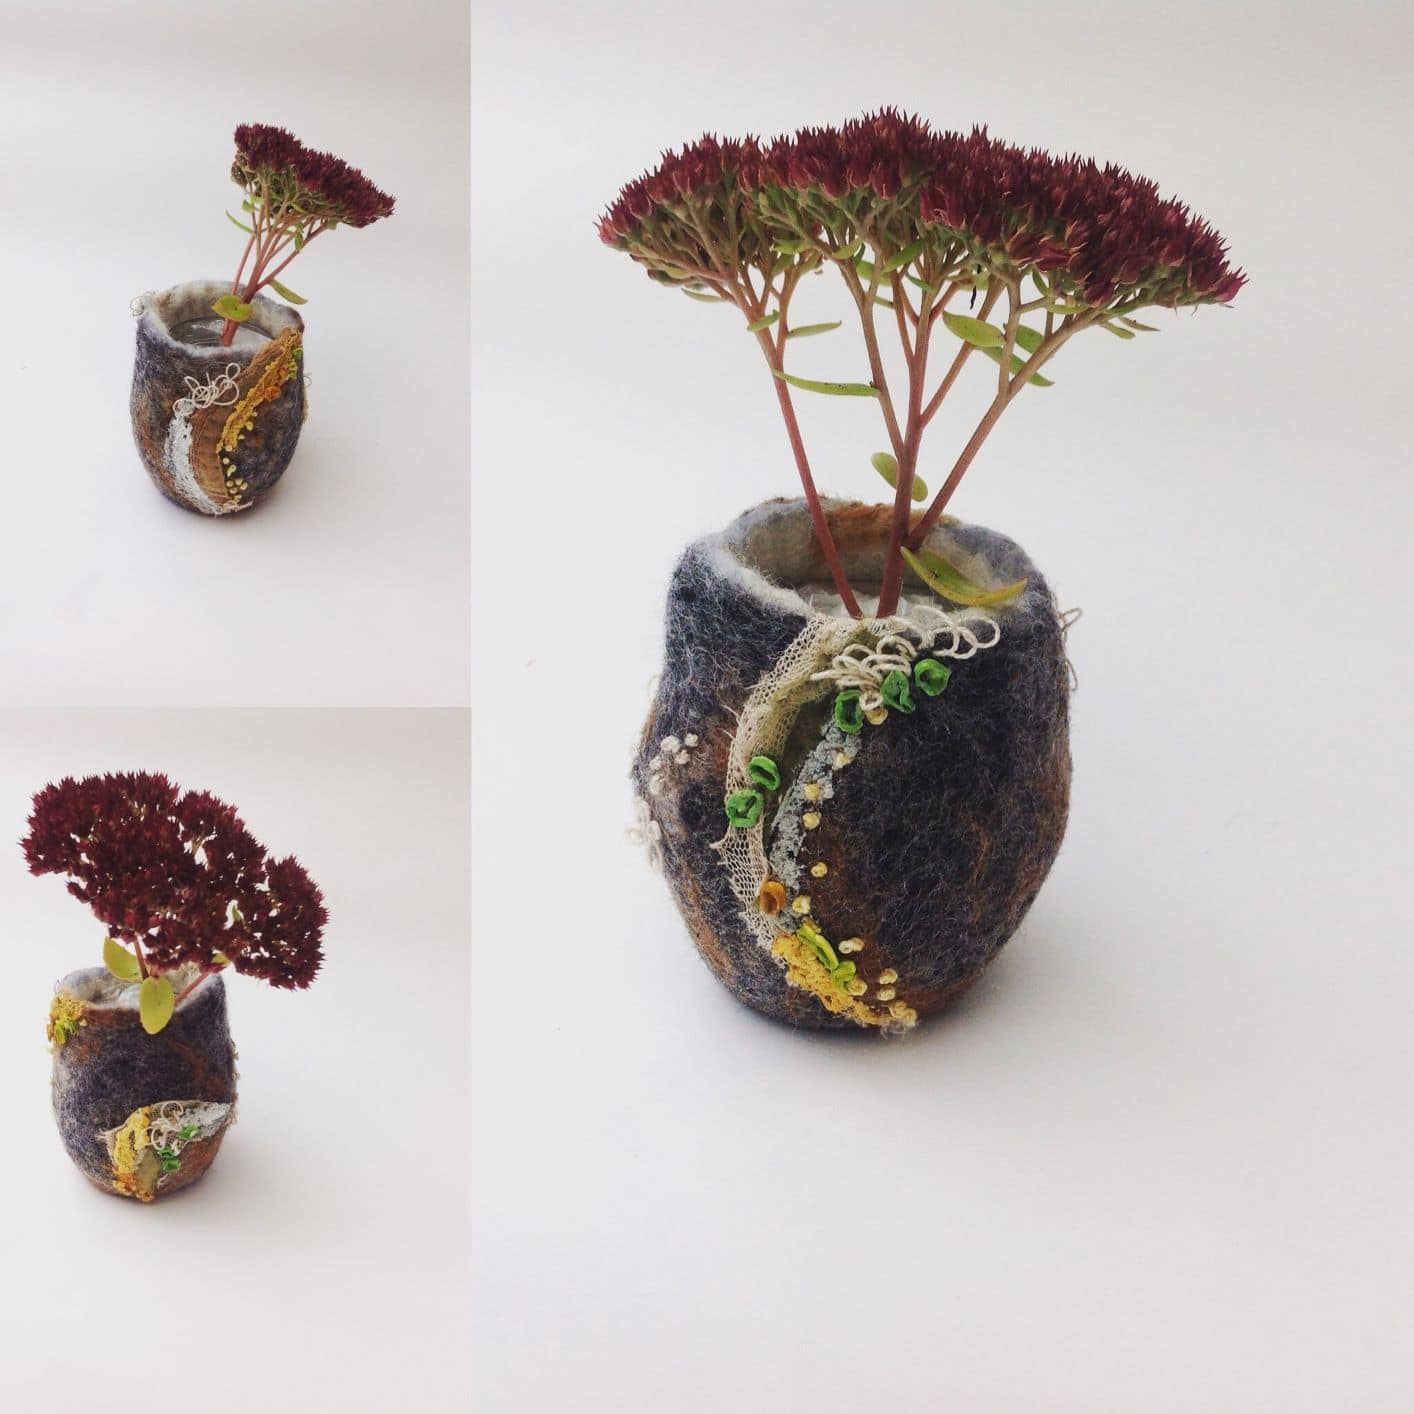 'A Felted Vessel – introduction to 3D wet felting'